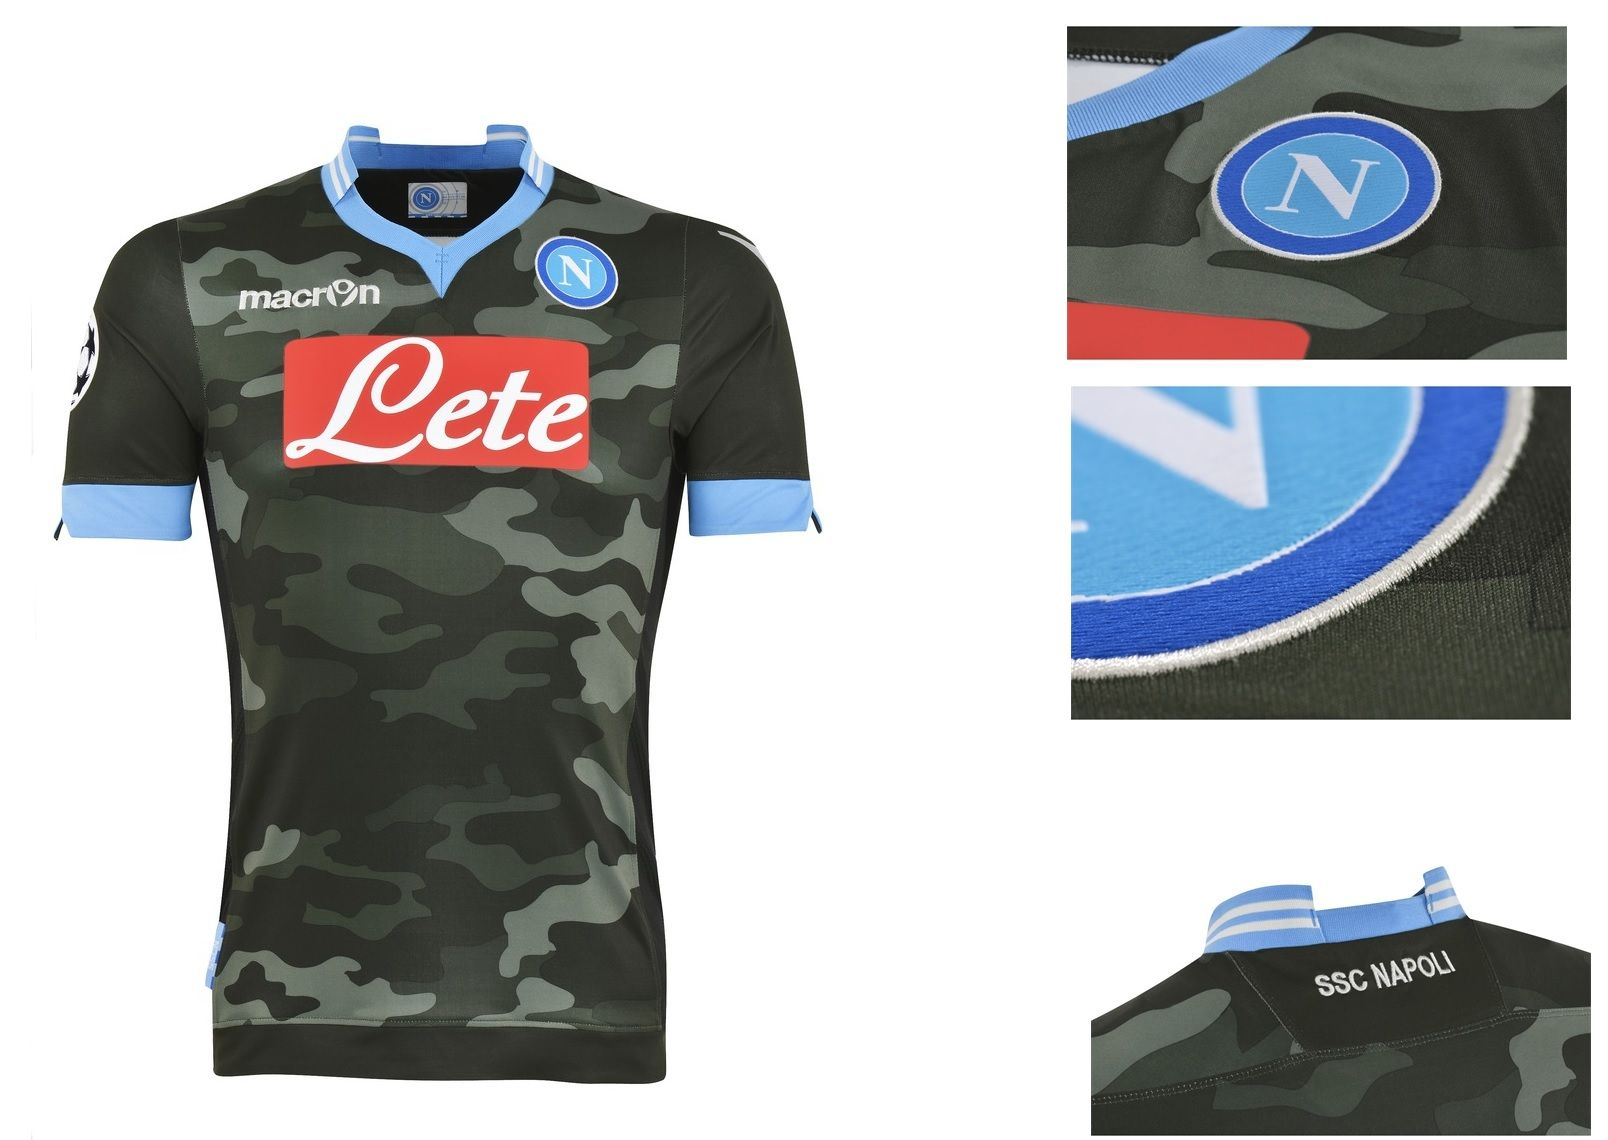 SSC Napoli Champions League Shirts 2013 14 by Macron  b30a8c613f537